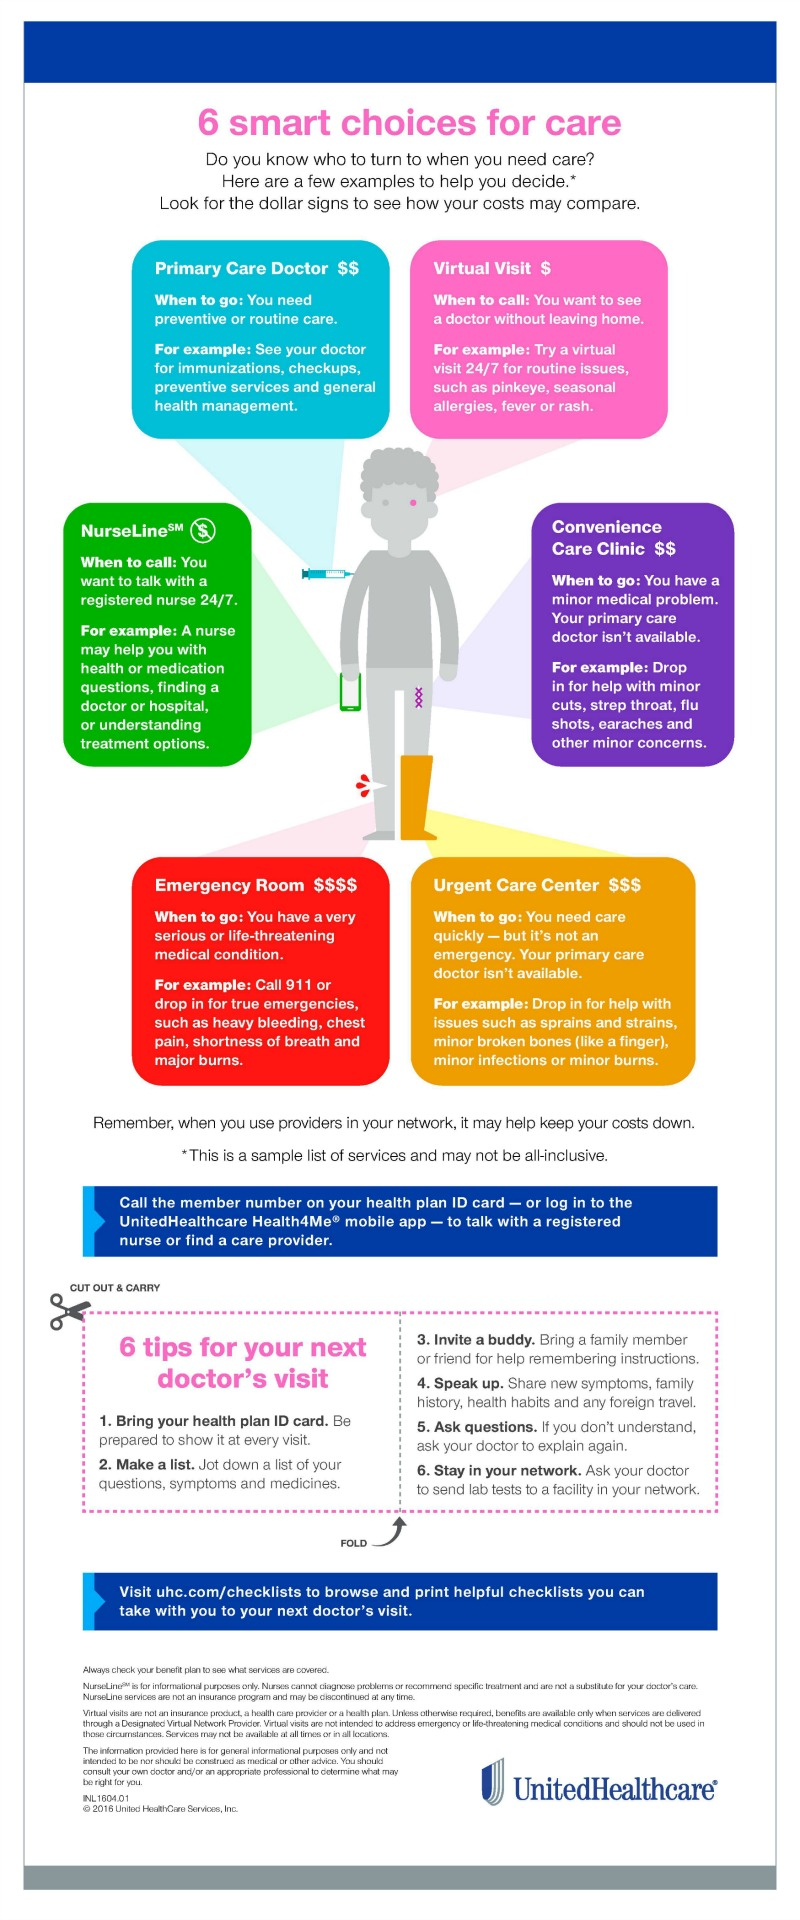 United Healthcare - 6 Smart Choices for Care